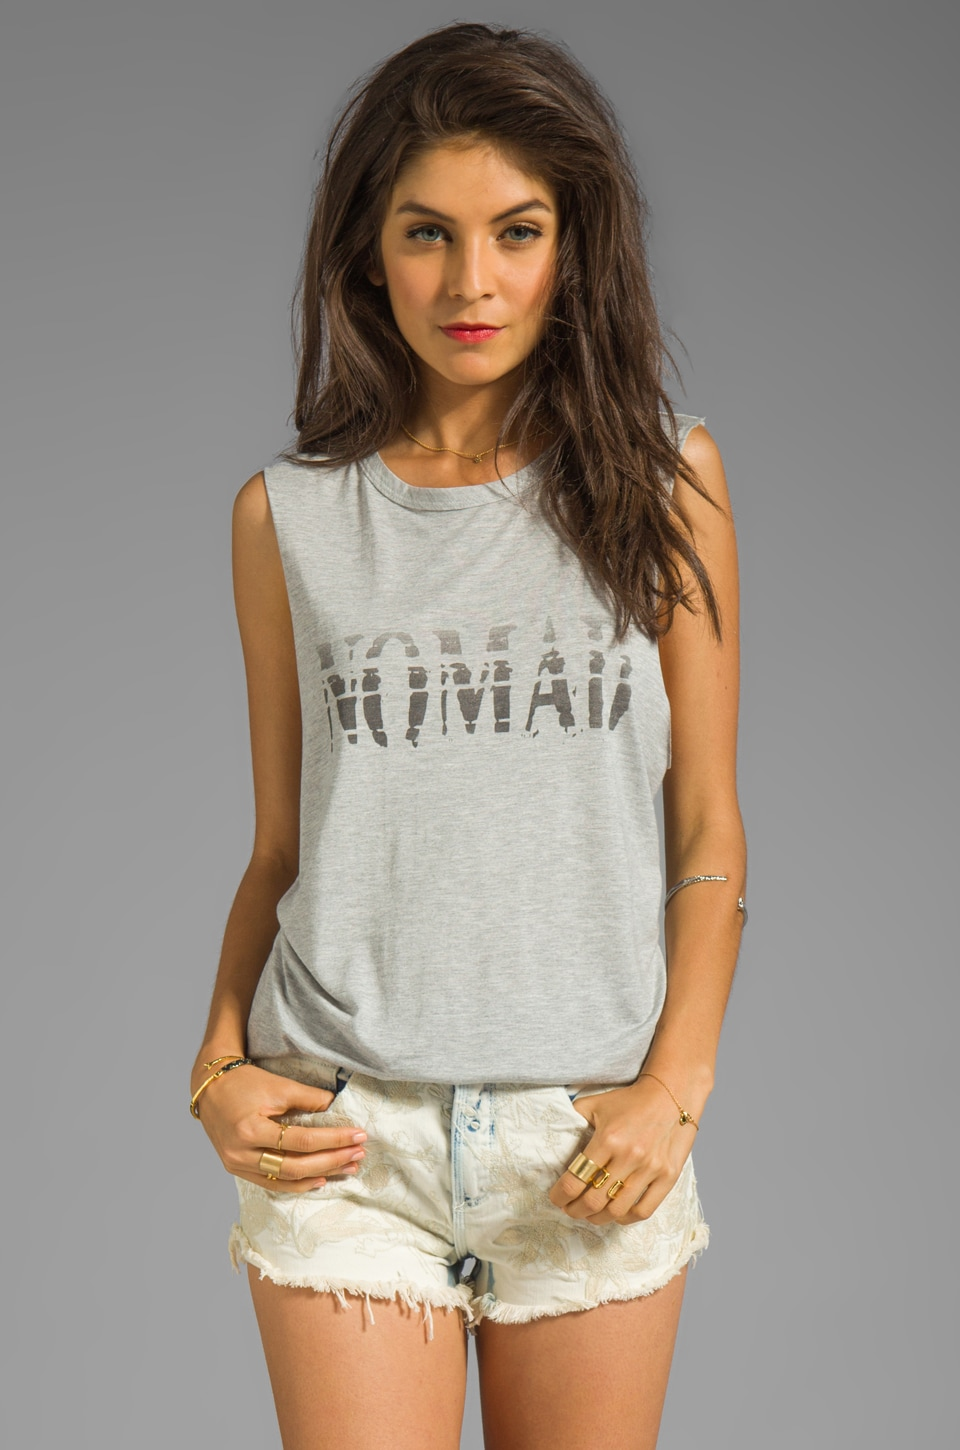 Haute Hippie Nomad Ombre Tee in Light Heather Grey and Black